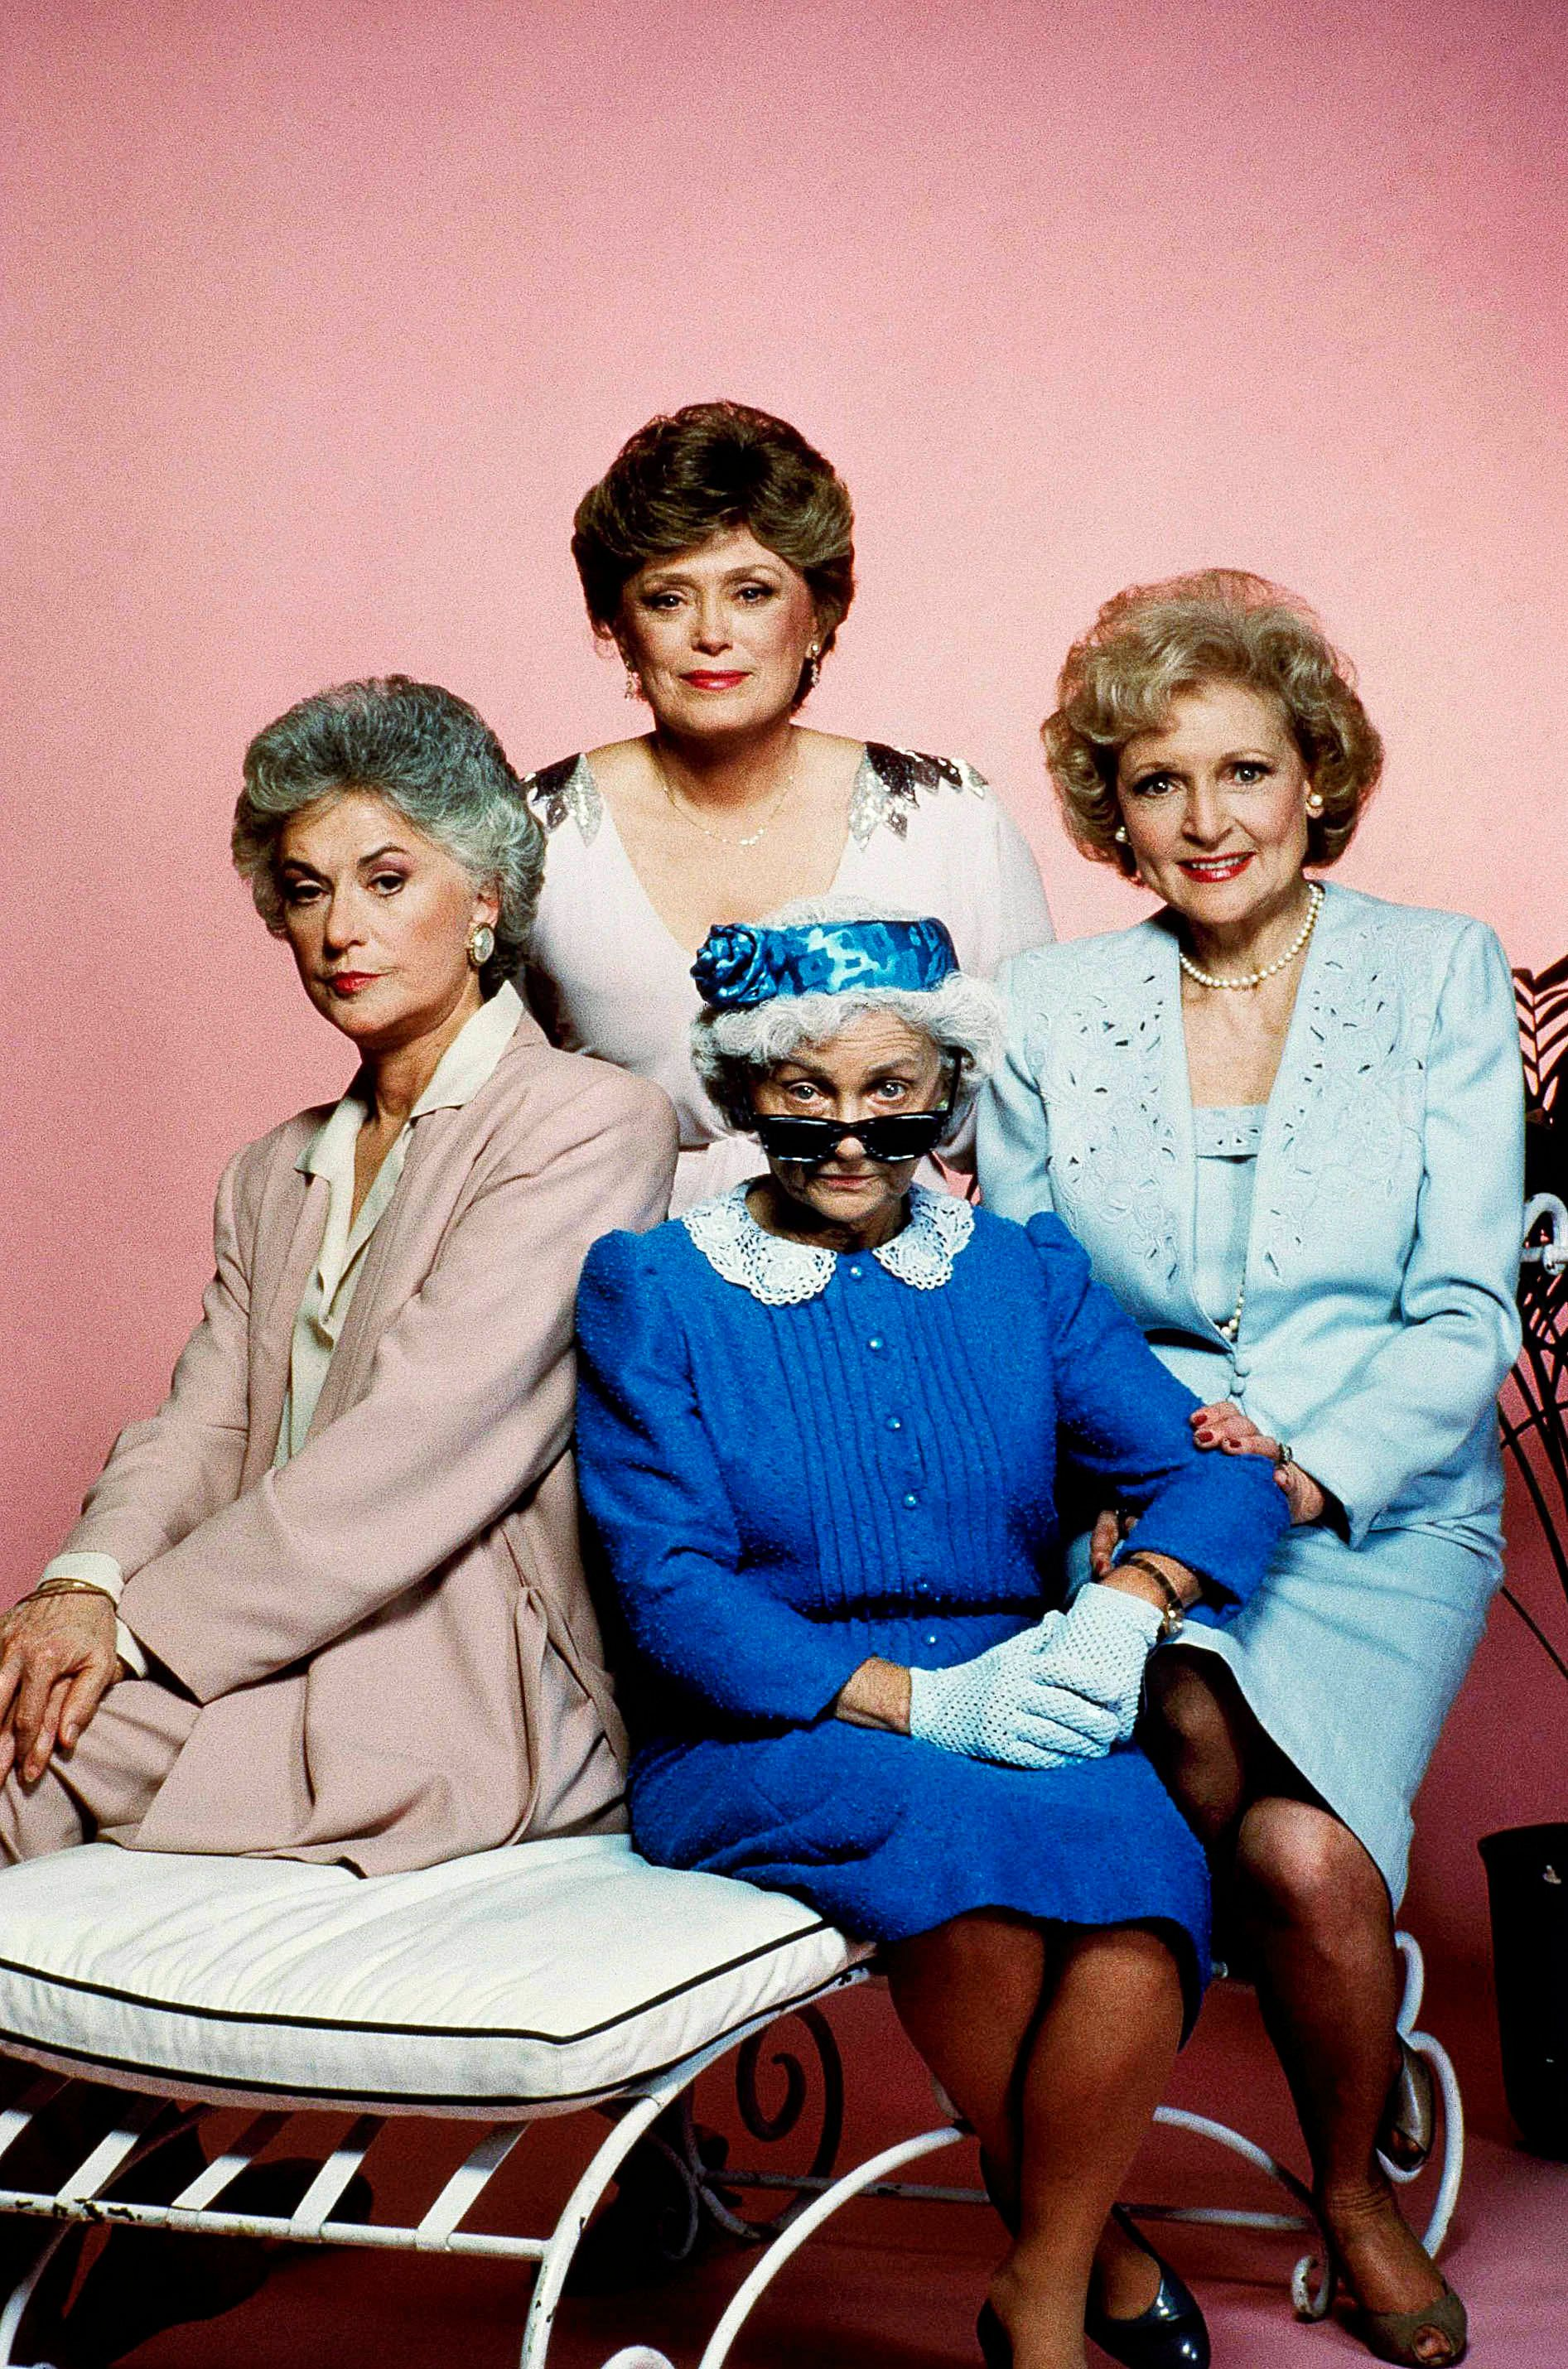 """** FILE ** Cast members of the television series """"Golden Girls,"""" pose for a photo, clockwise from left, Bea Arthur, Rue McClanahan, Betty White and Estelle Getty. Getty, the diminutive actress who spent 40 years struggling for success before landing a role in 1985 as the sarcastic octogenarian Sophia on """"The Golden Girls,"""" died Tuesday, July 22, 2008, at her Los Angeles home. She was 84. (AP Photo/File)"""